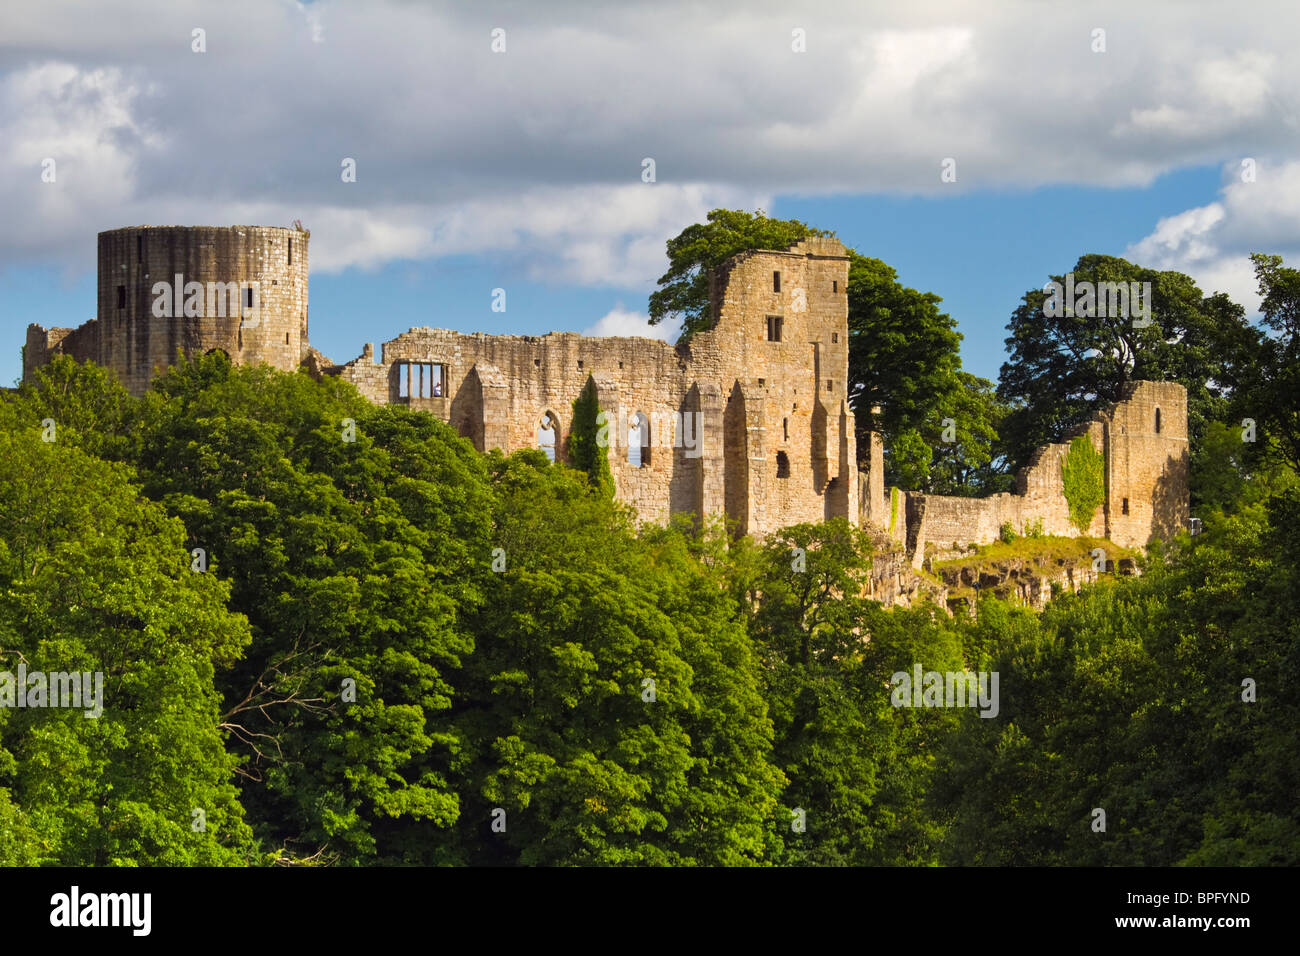 Barnard Castle, a Norman fortification, built on the banks of the River Tees, Teesdale, County Durham, England - Stock Image